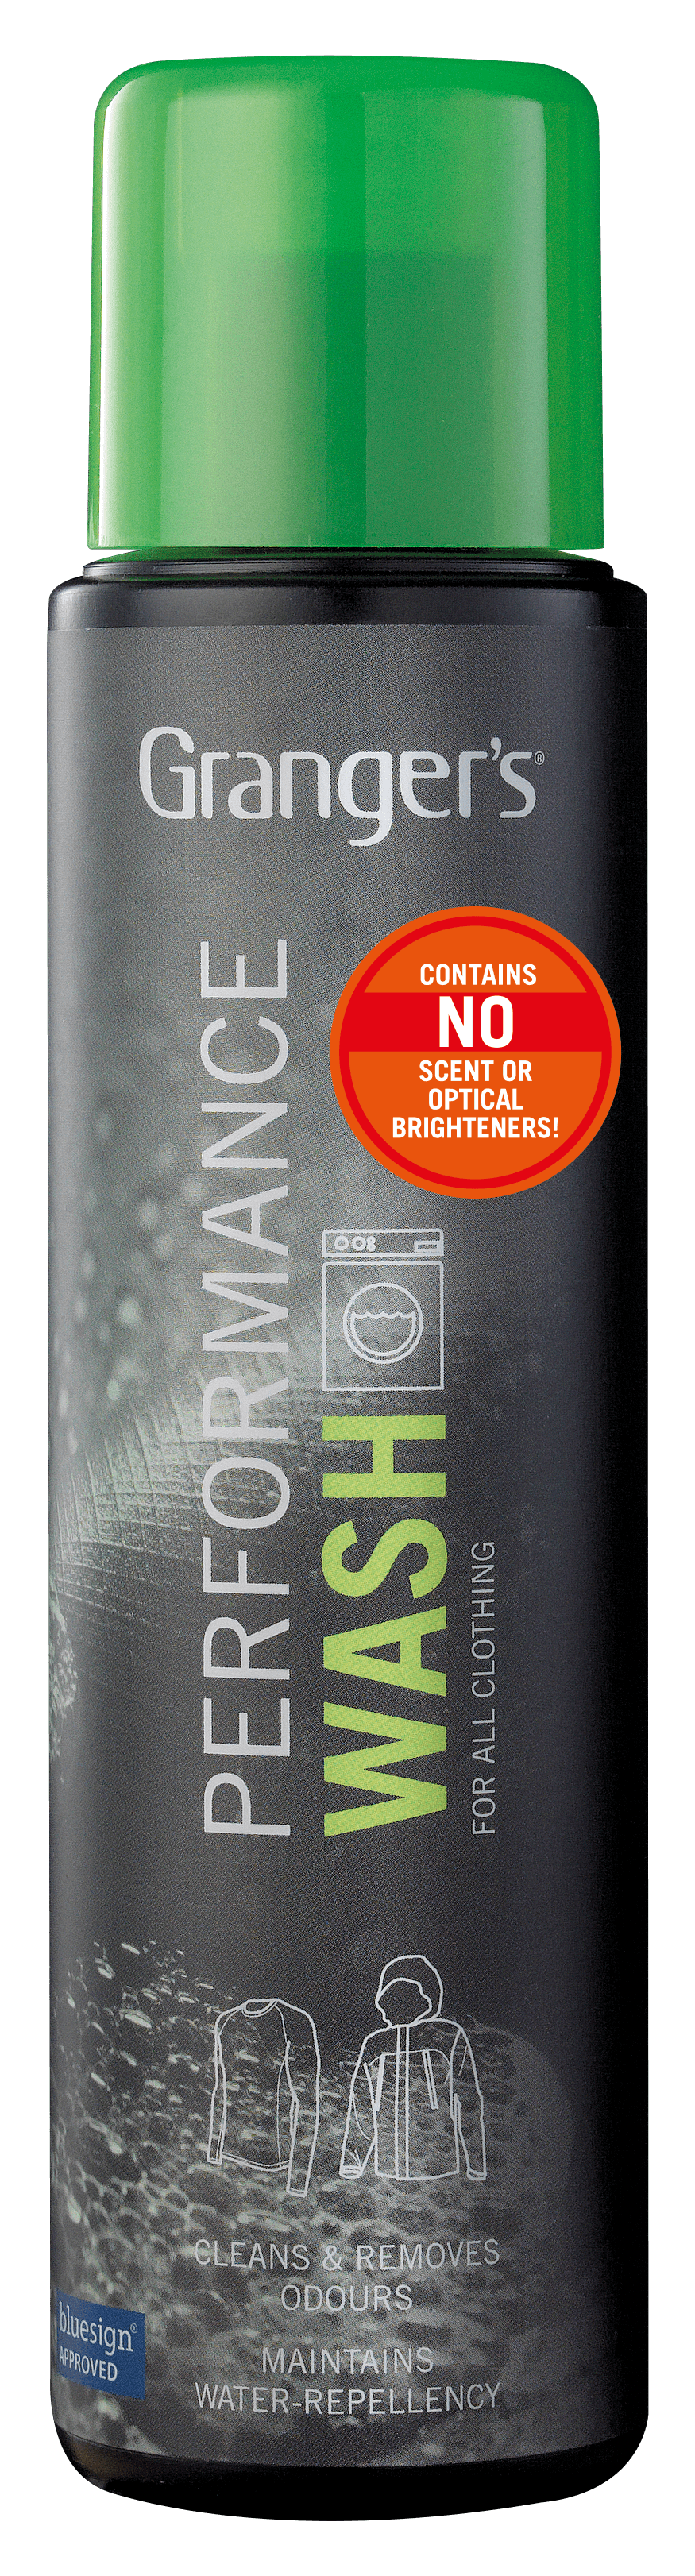 Granger's Performance Wash For Outerwear   The Ultimate High Performance Cleaner for Technical Outerwear   10 oz   No... by Granger's International Ltd